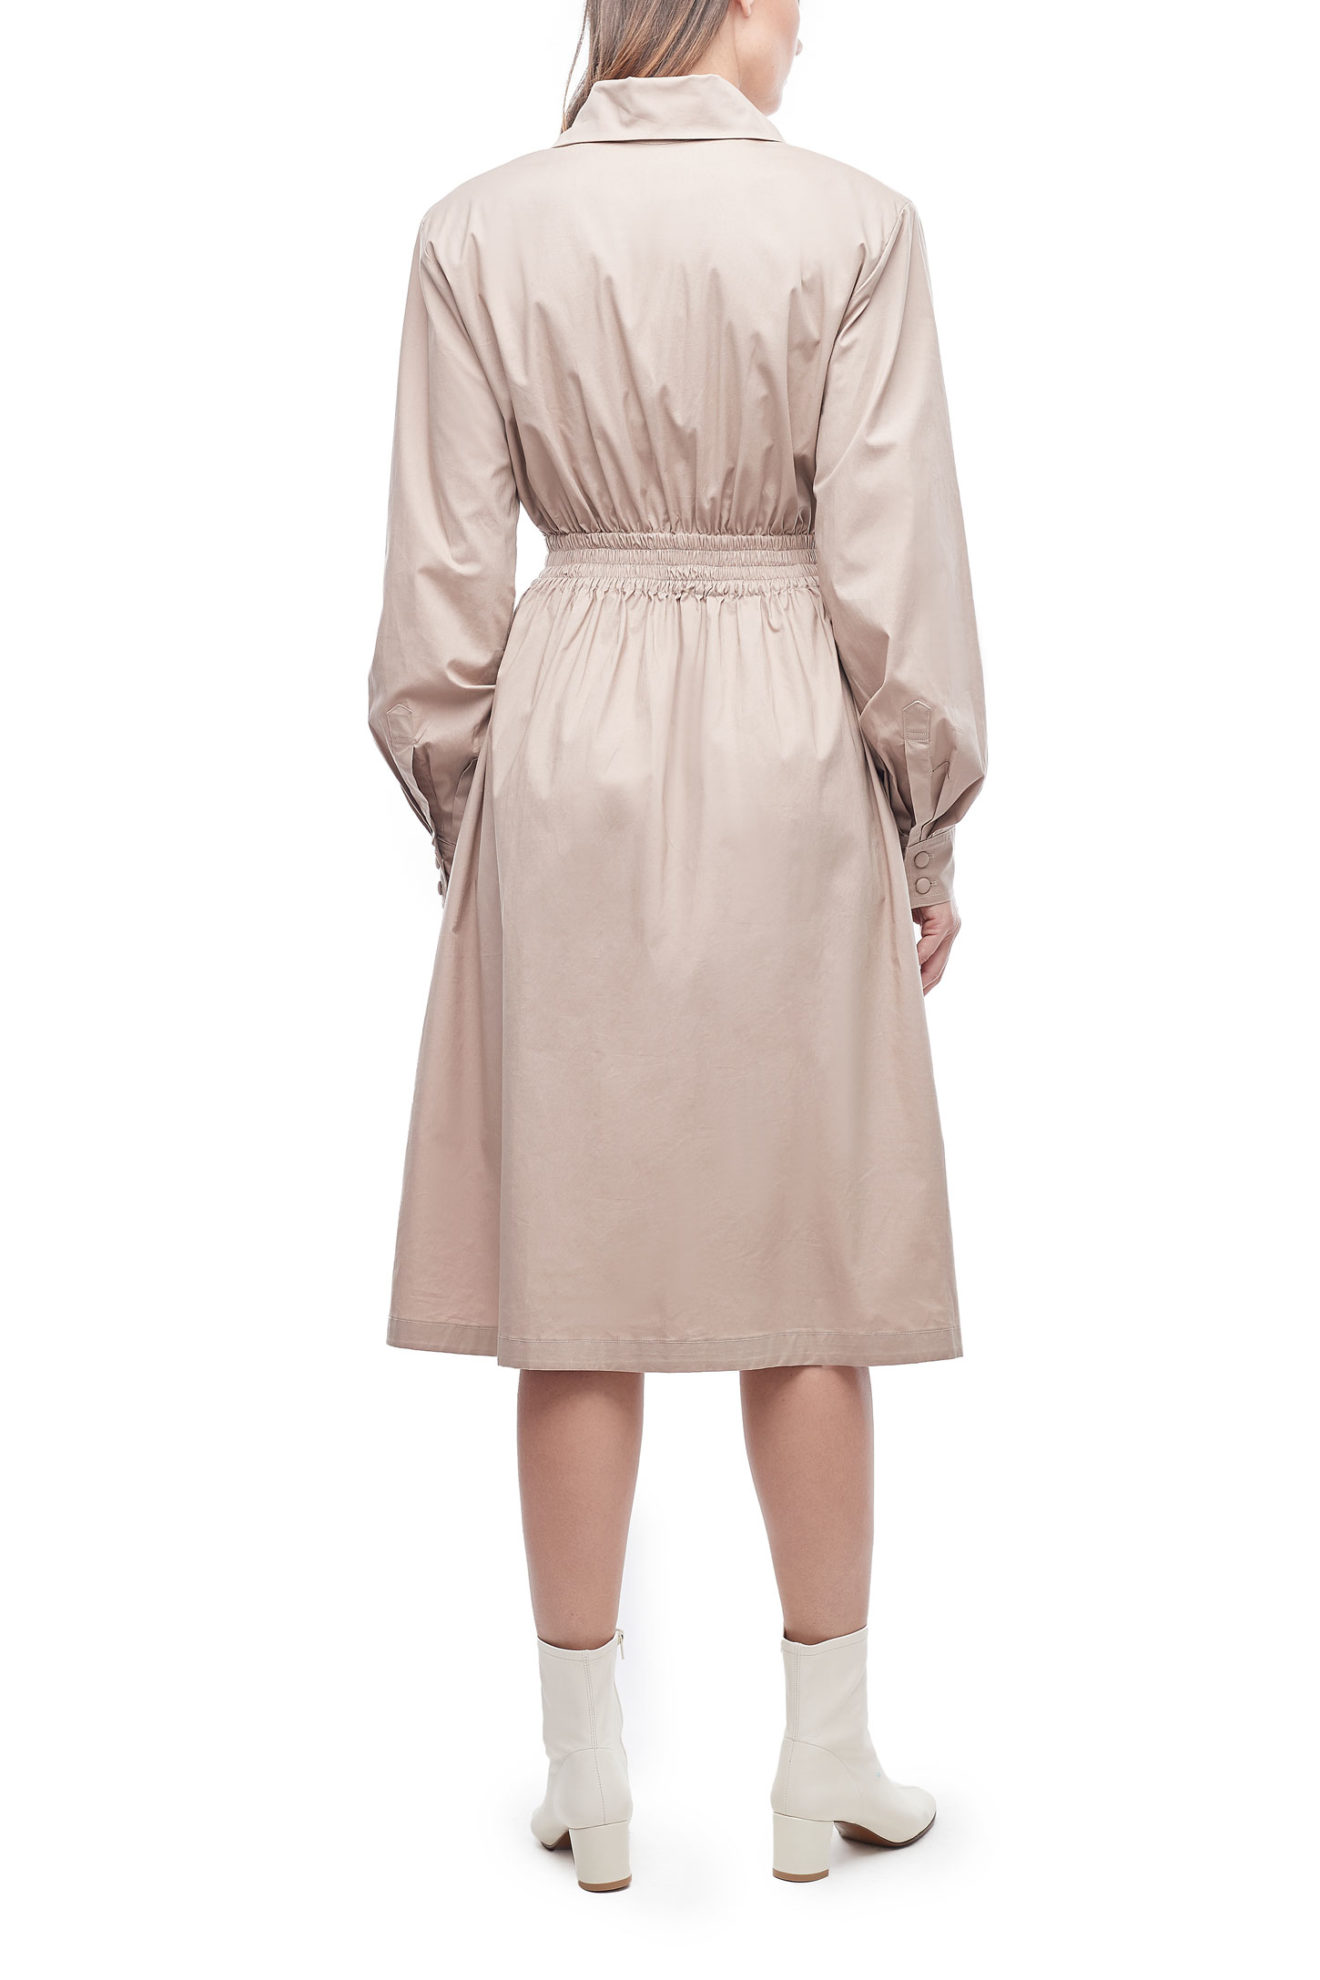 The Tyler Coat Dress in Nude - Atelier Patty Ang